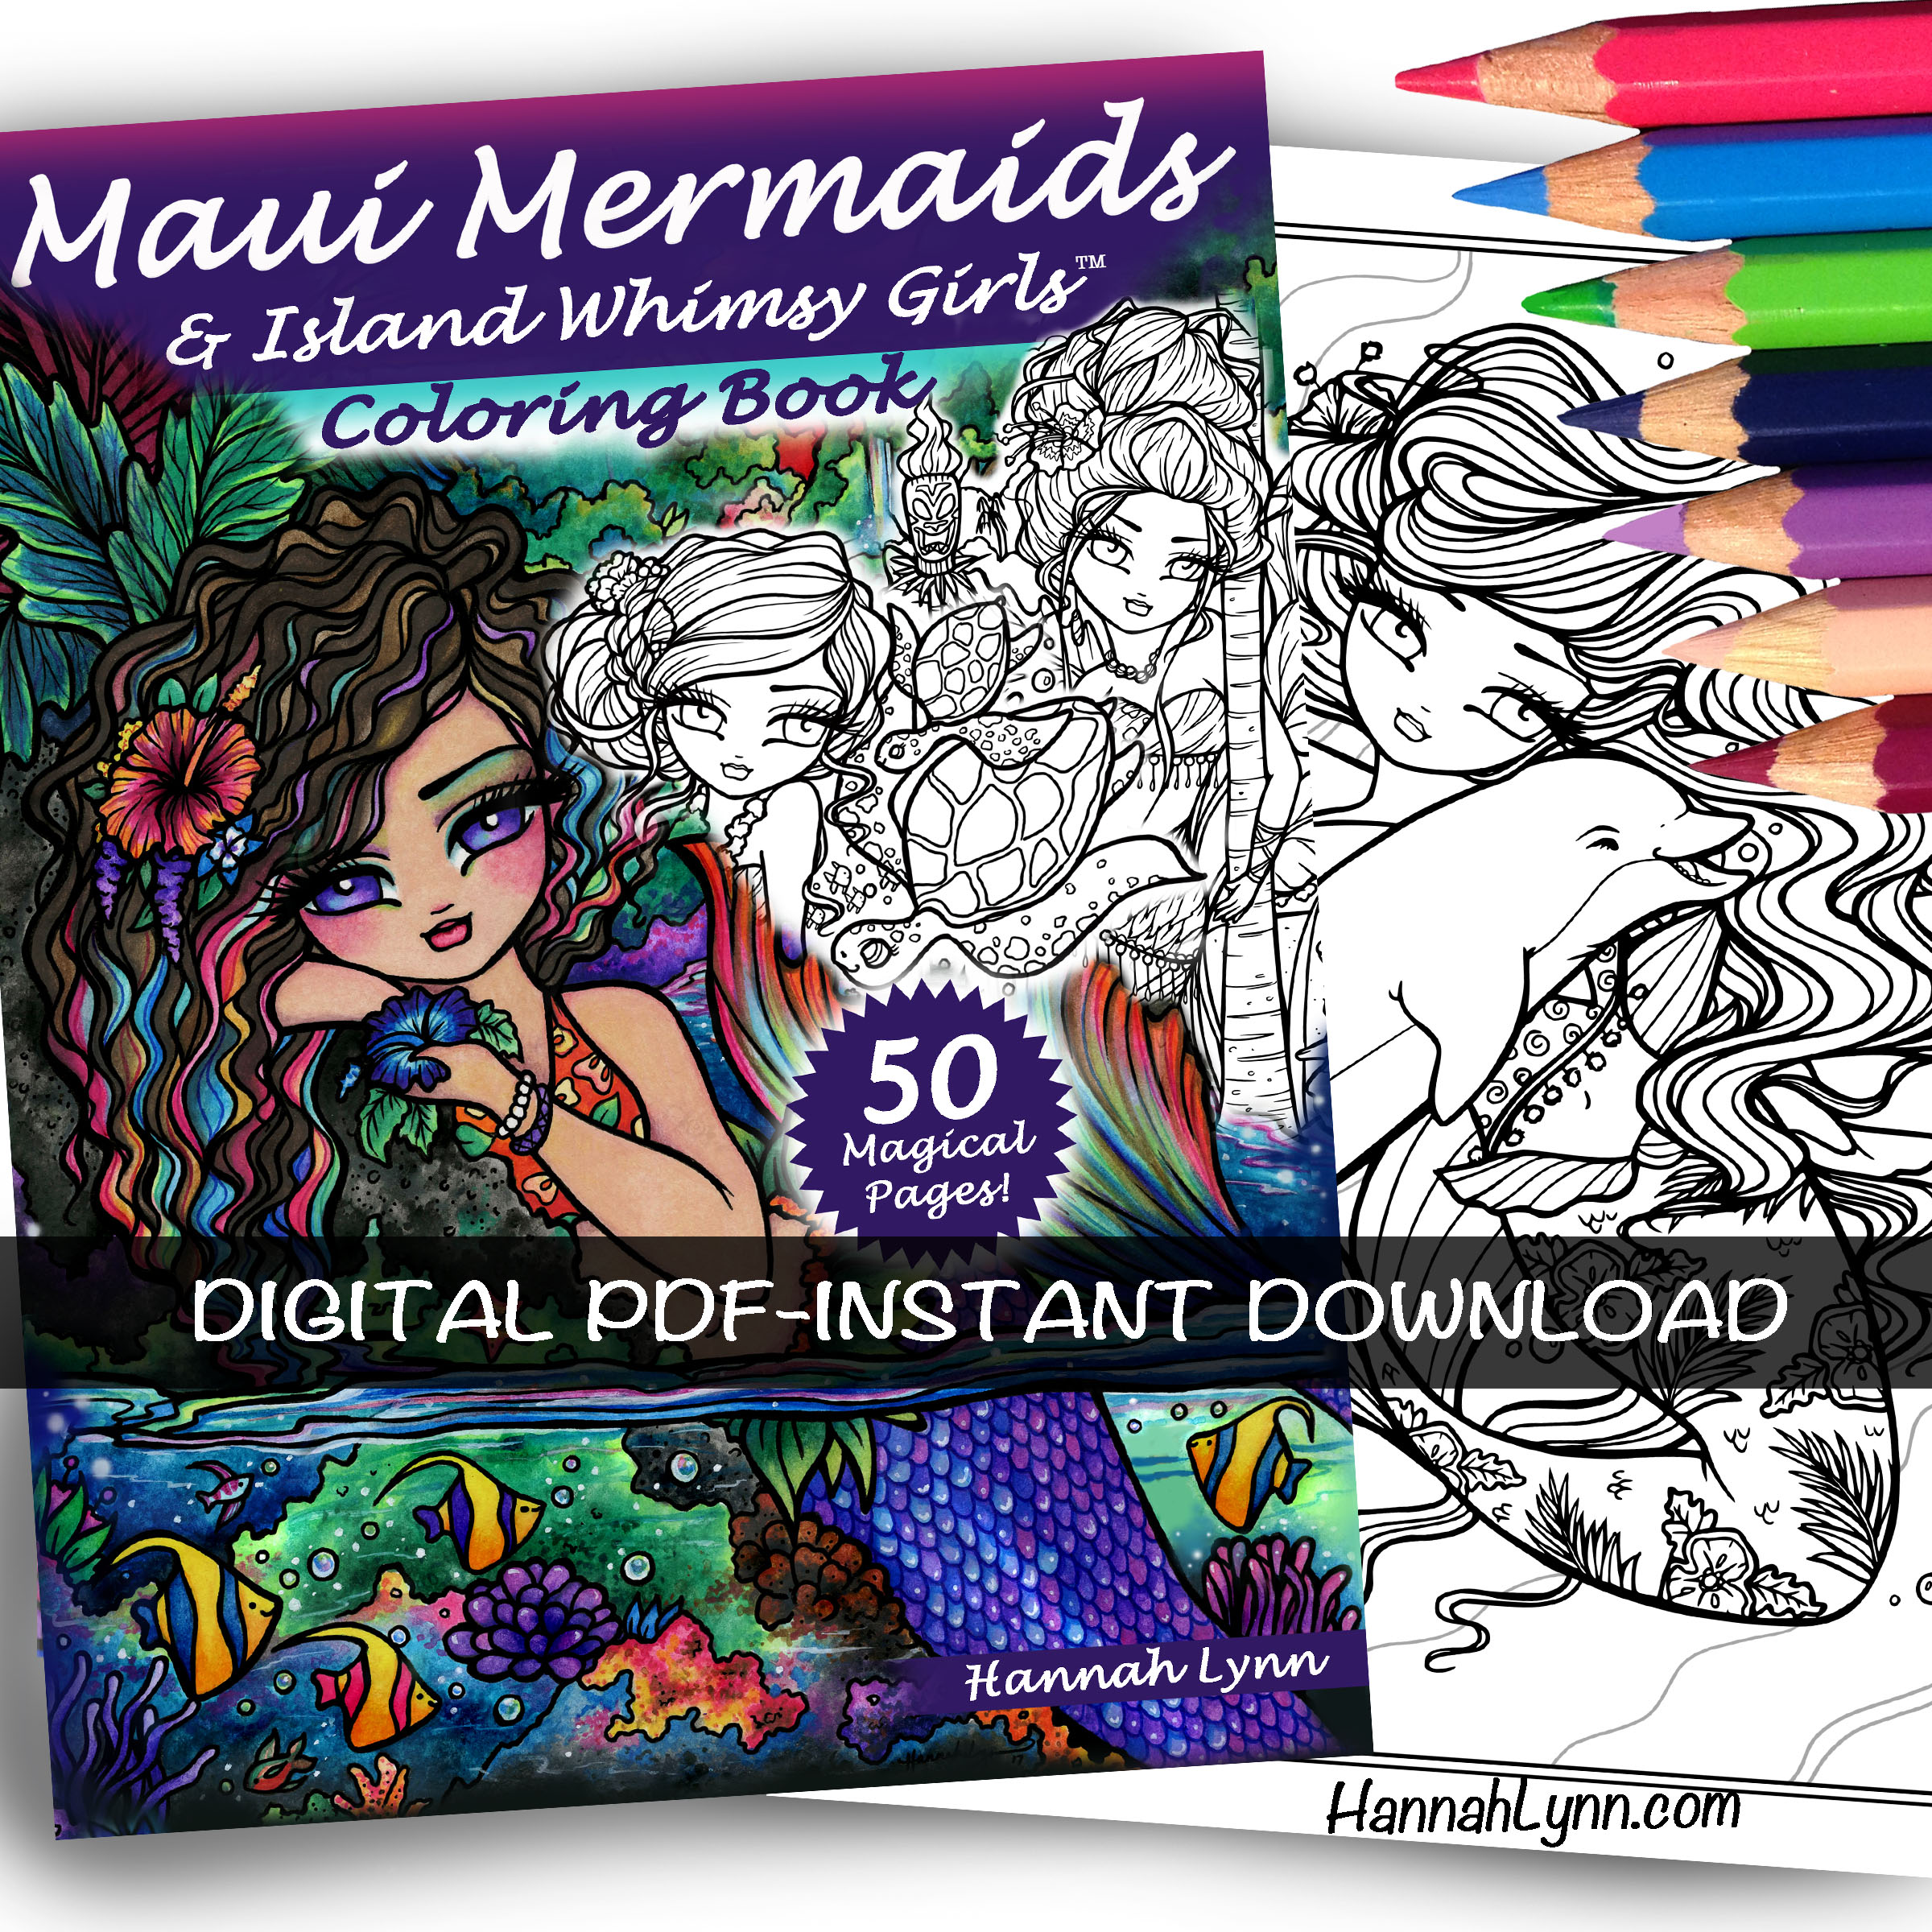 PDF Maui Mermaids Island Whimsy Girls Coloring Book INSTANT DOWNLOAD